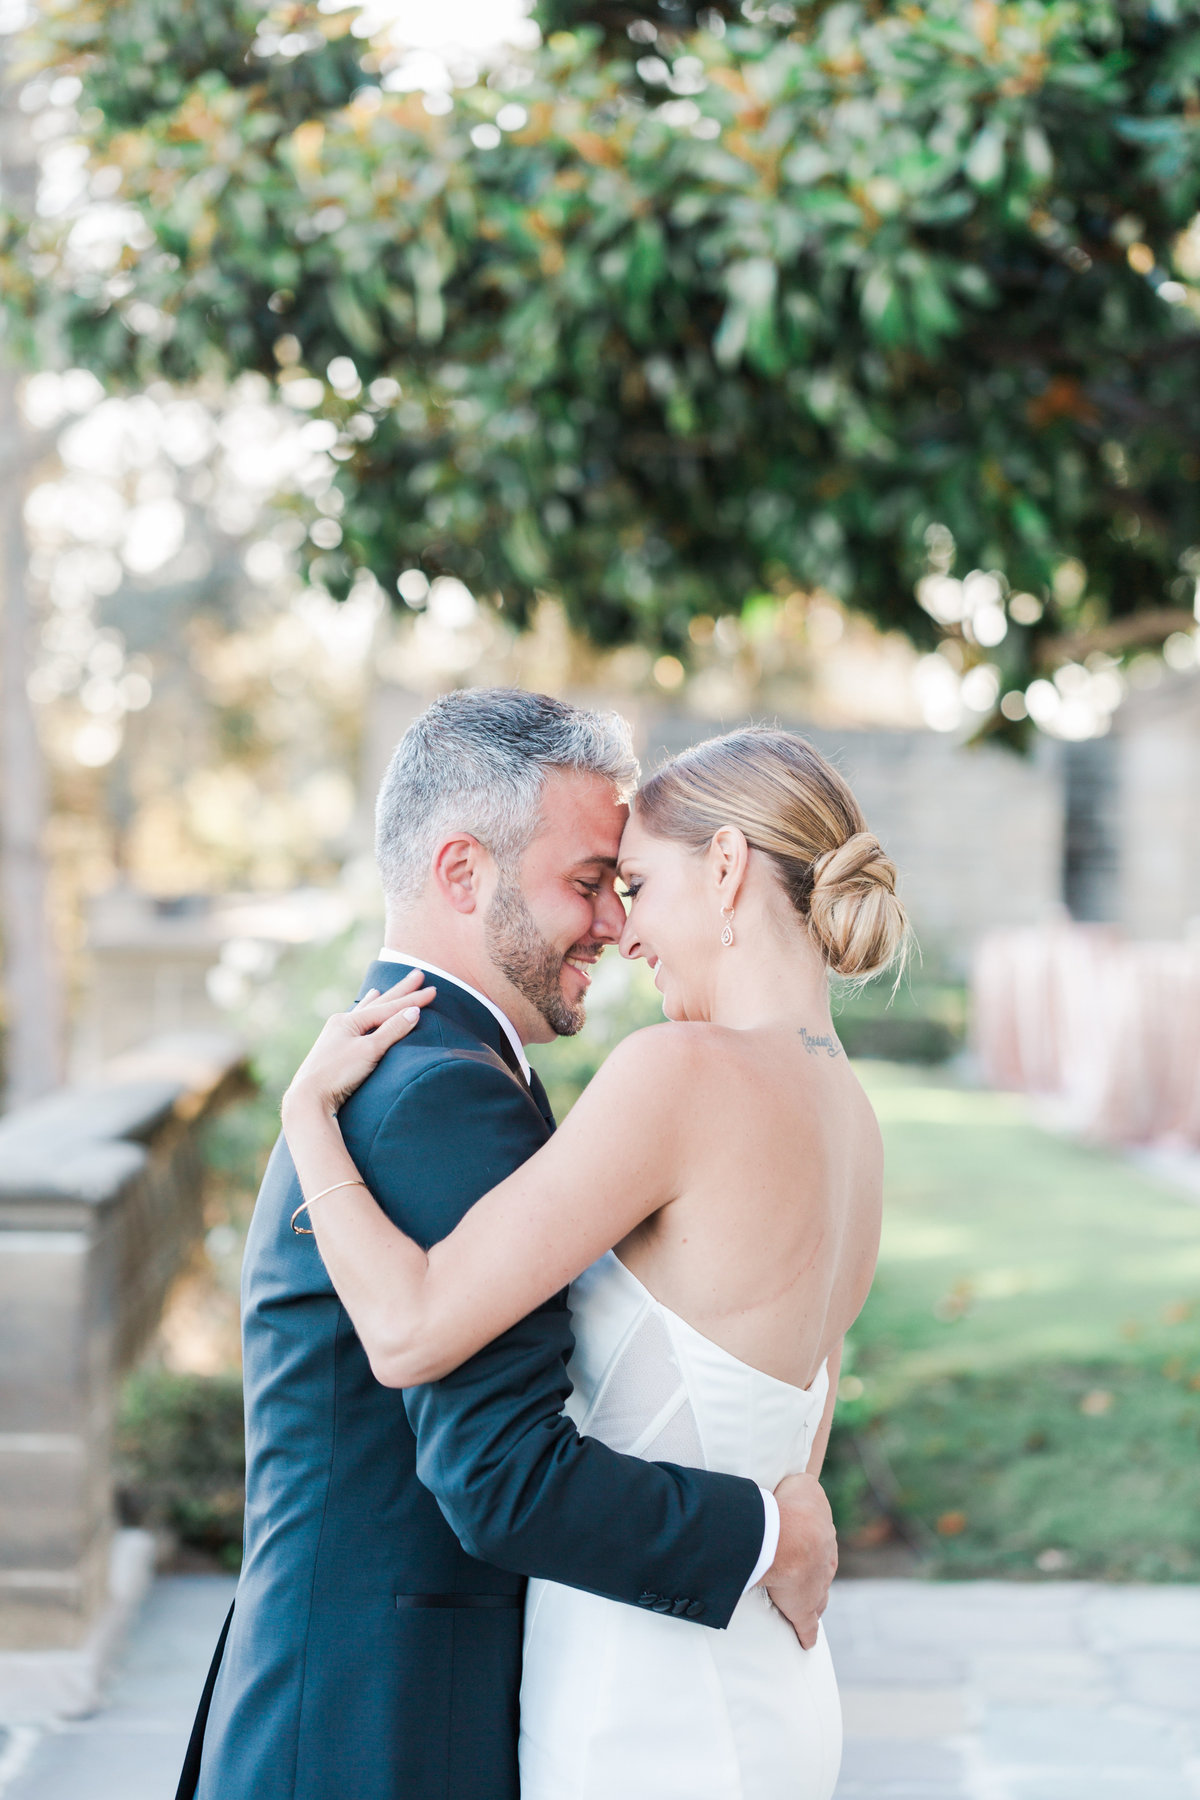 Greystone_Mansion_Intimate_Black_Tie_Wedding_Valorie_Darling_Photography - 155 of 206